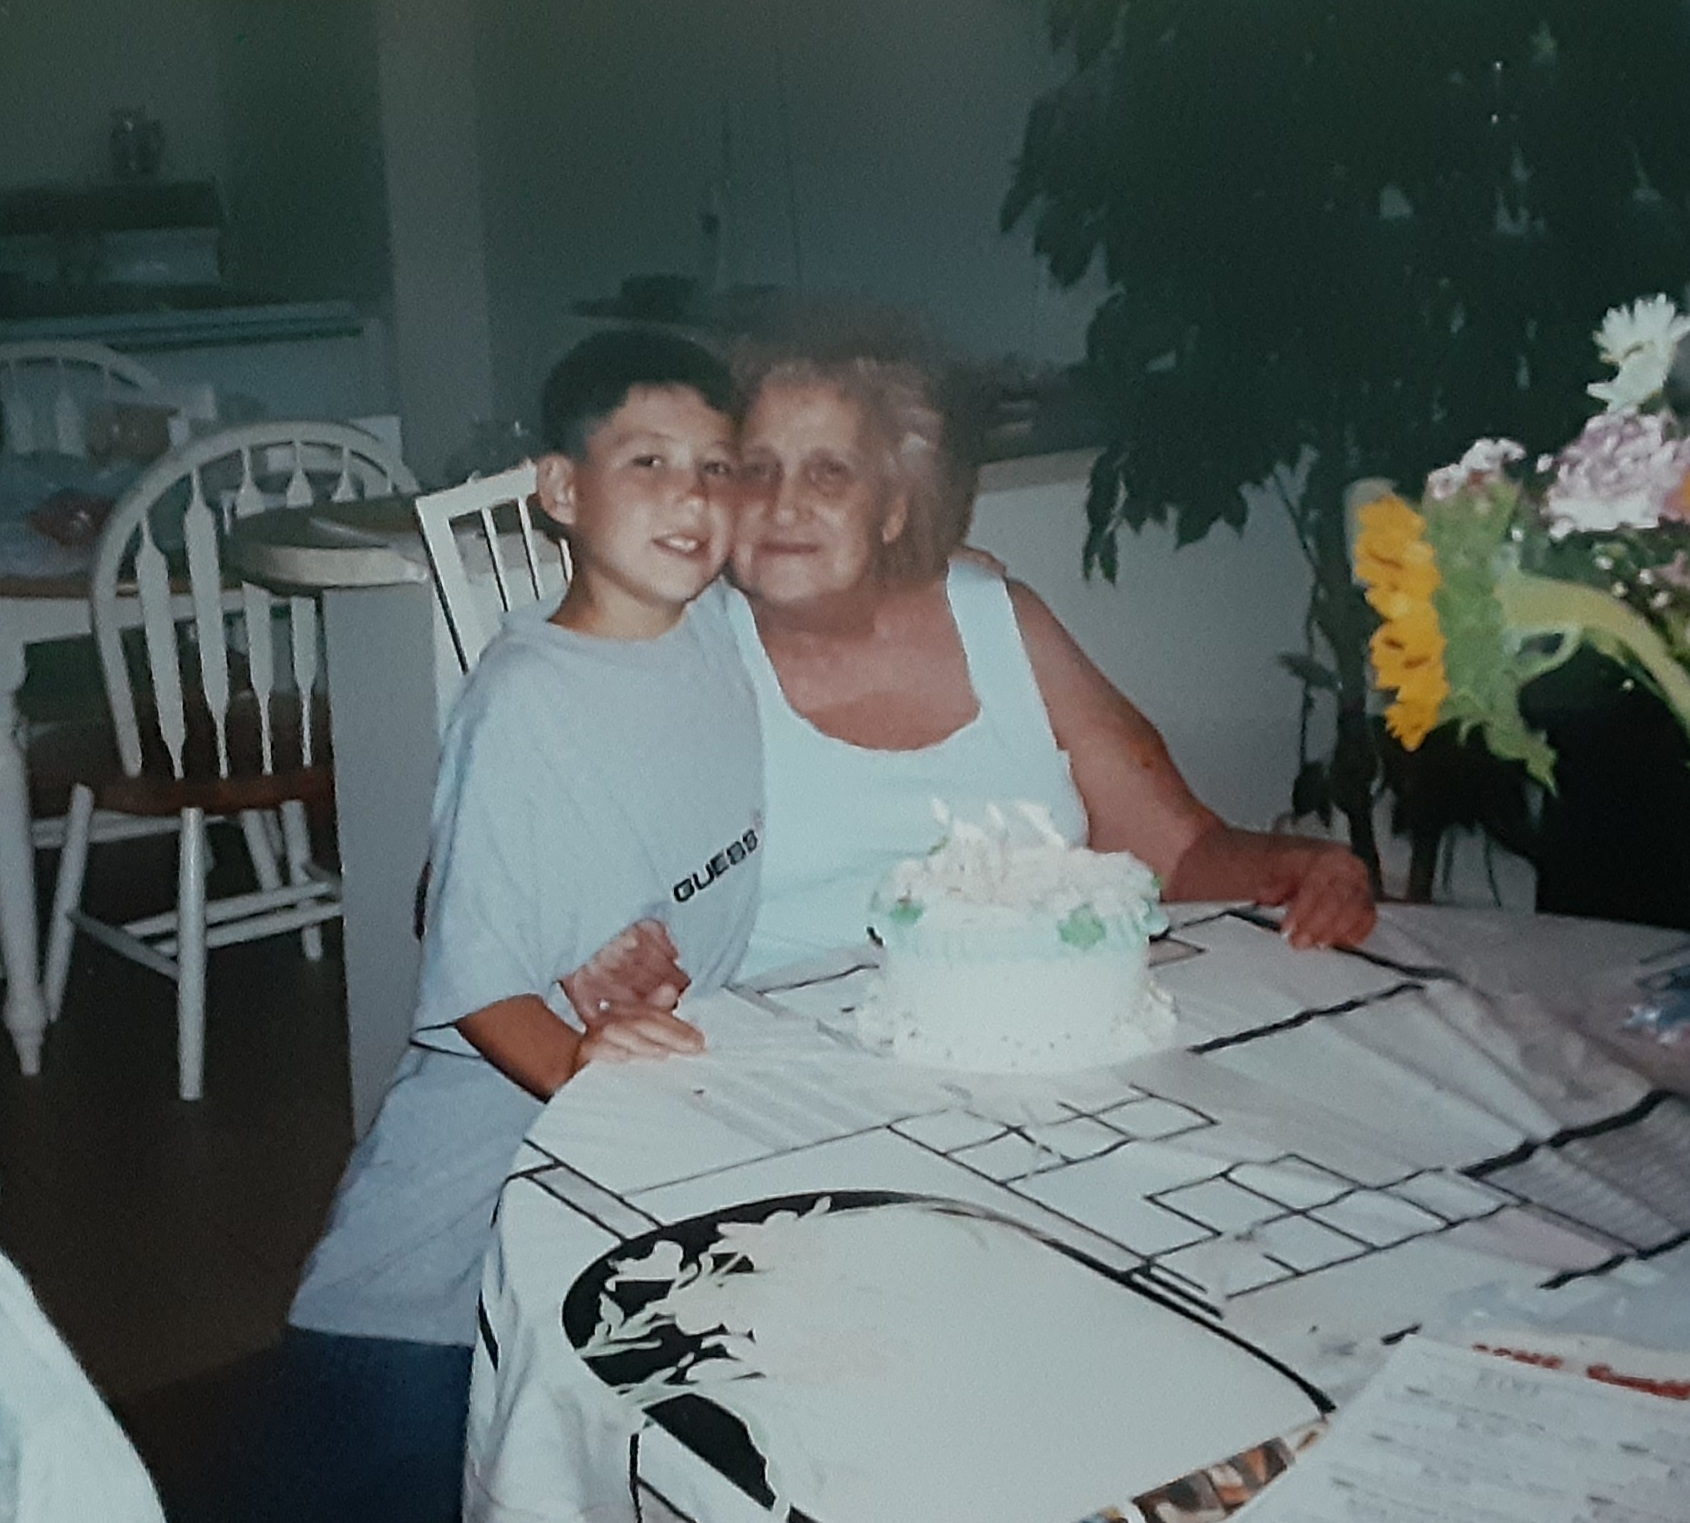 Your with Great grandmom now...who loves you so much!!!<br /> And I know you love her very much!!!<br /> You are her baby as she would call you...<br /> She was always very proud of you!!!<br /> You always were making her laugh and smile with the silly things you did...So I am sure your making her laugh and smile once again!!! We all miss and love you both so very much!!!